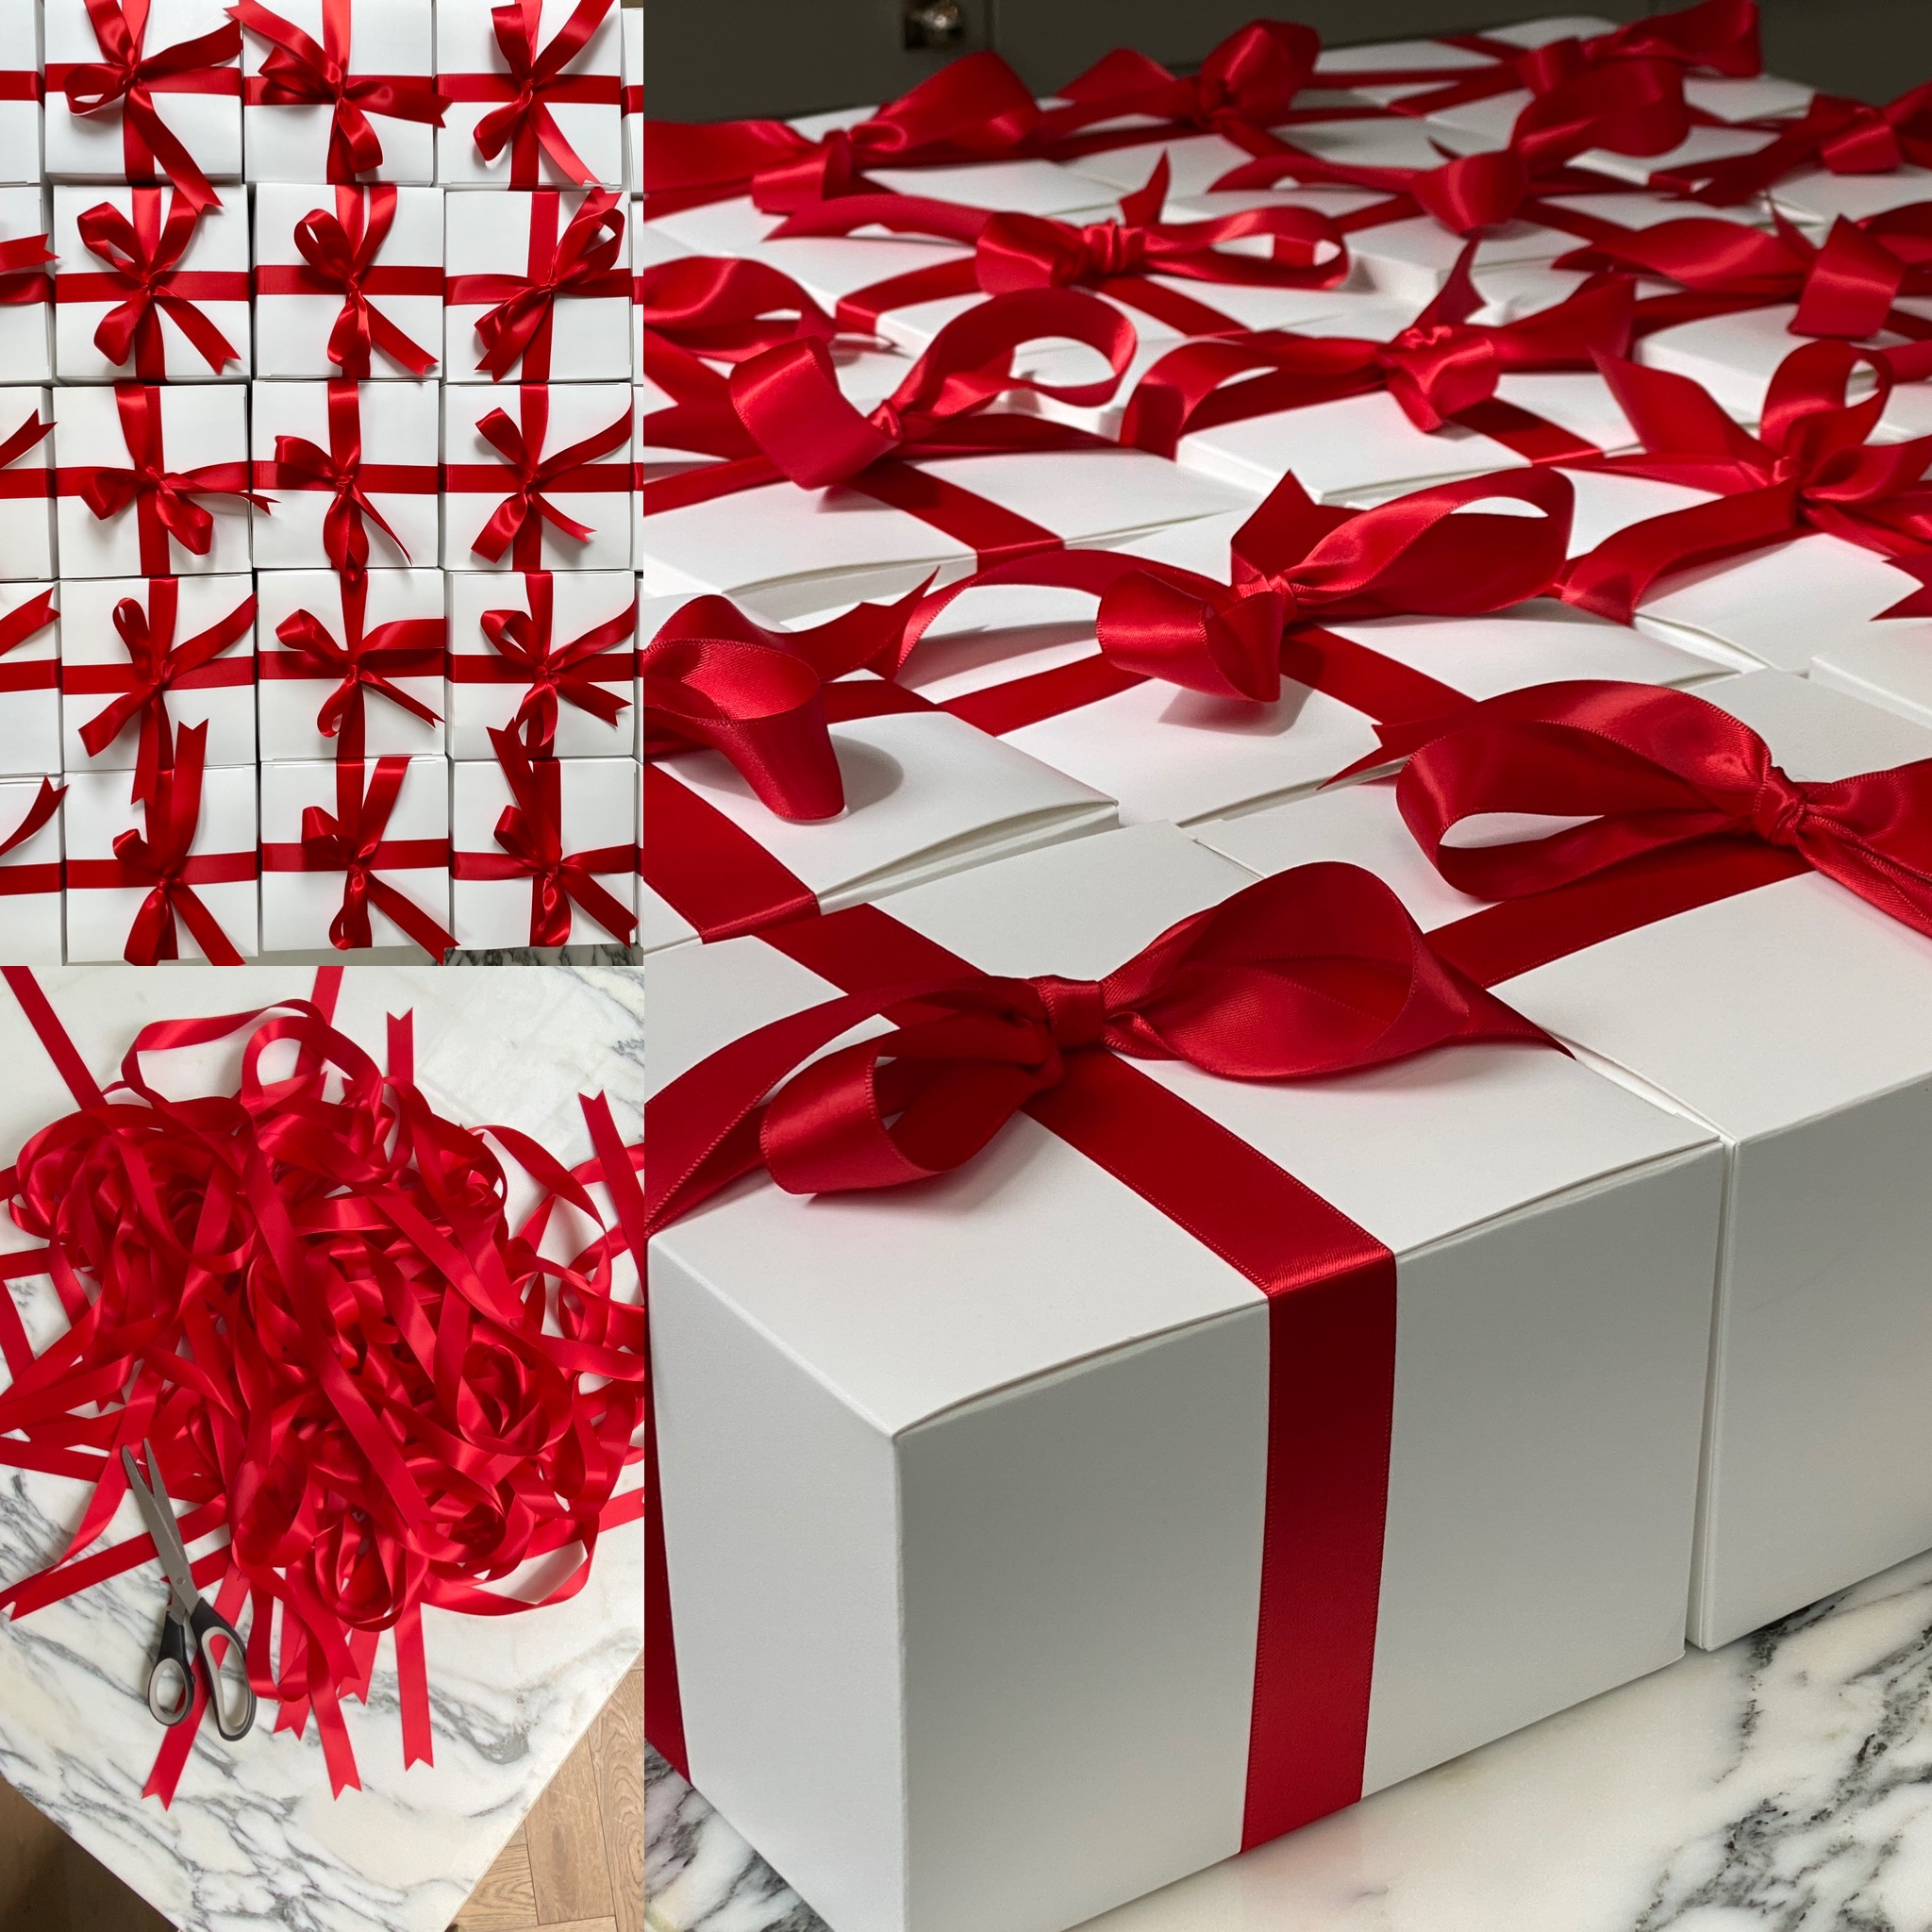 Gift Wrapping Boxes How To - Decorating with Ribbon